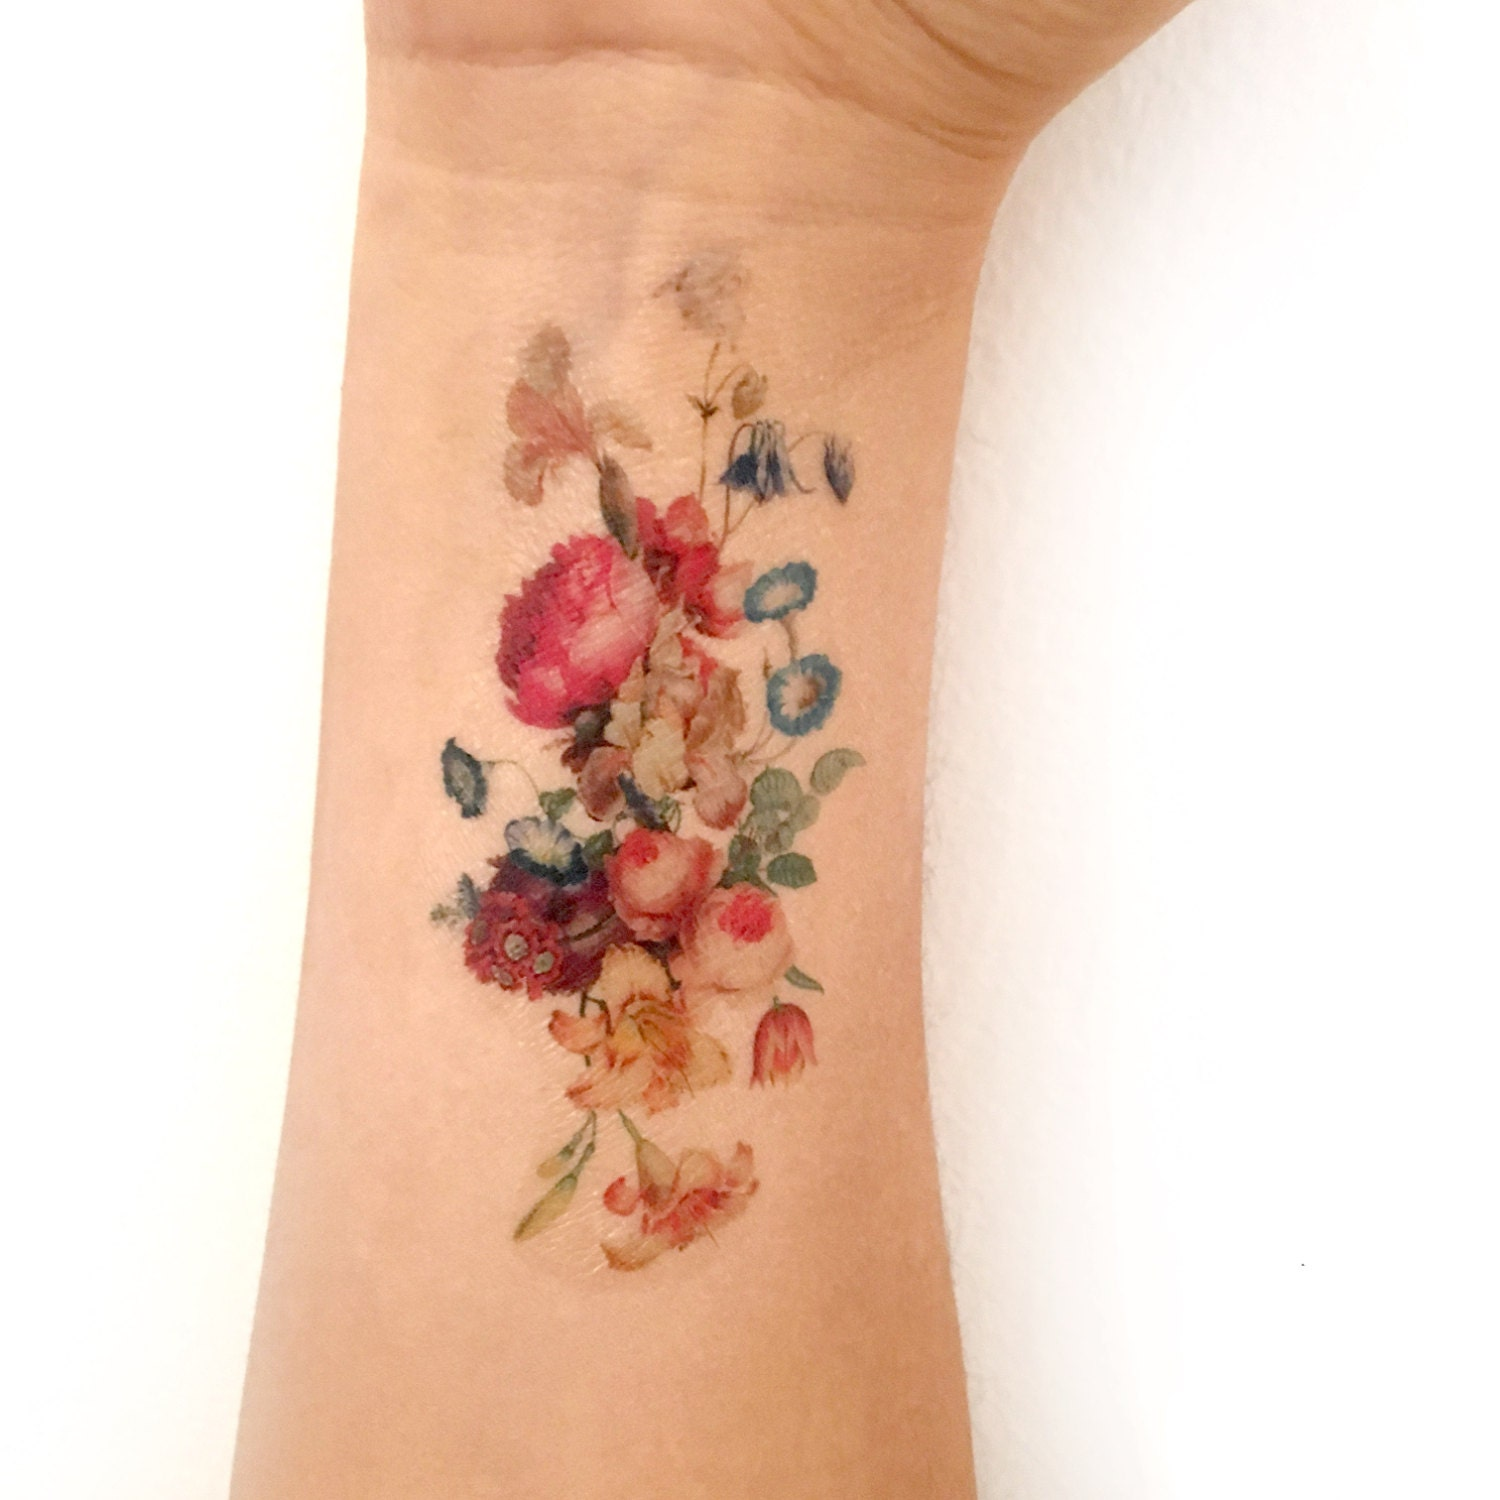 Bouquet Tattoo Tattoos: Vintage Floral Temporary Tattoo. Fresh Bouquet Of Flowers